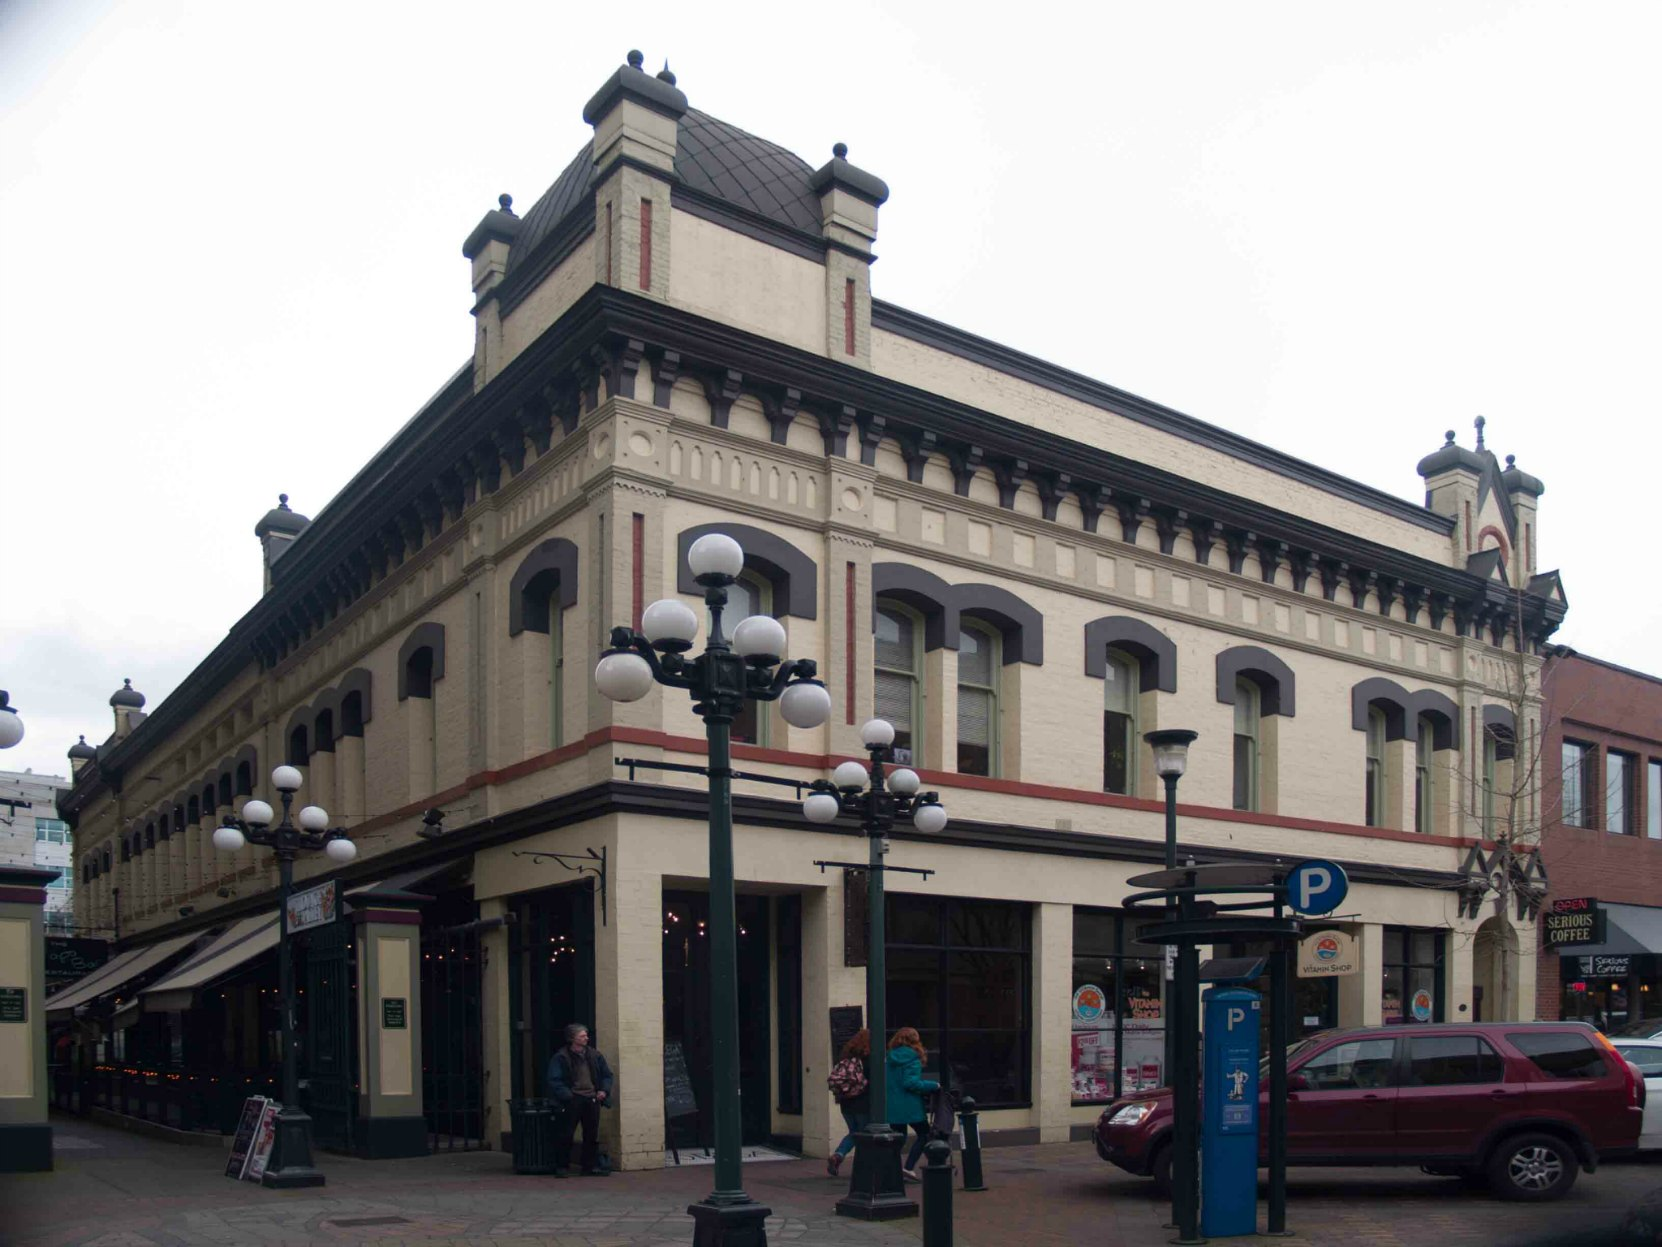 1210-1216 Broad Street, built for Alexander Alfred Green. This building was the location of Victoria's first telephone exchange, founded by Robert Burns McMicking